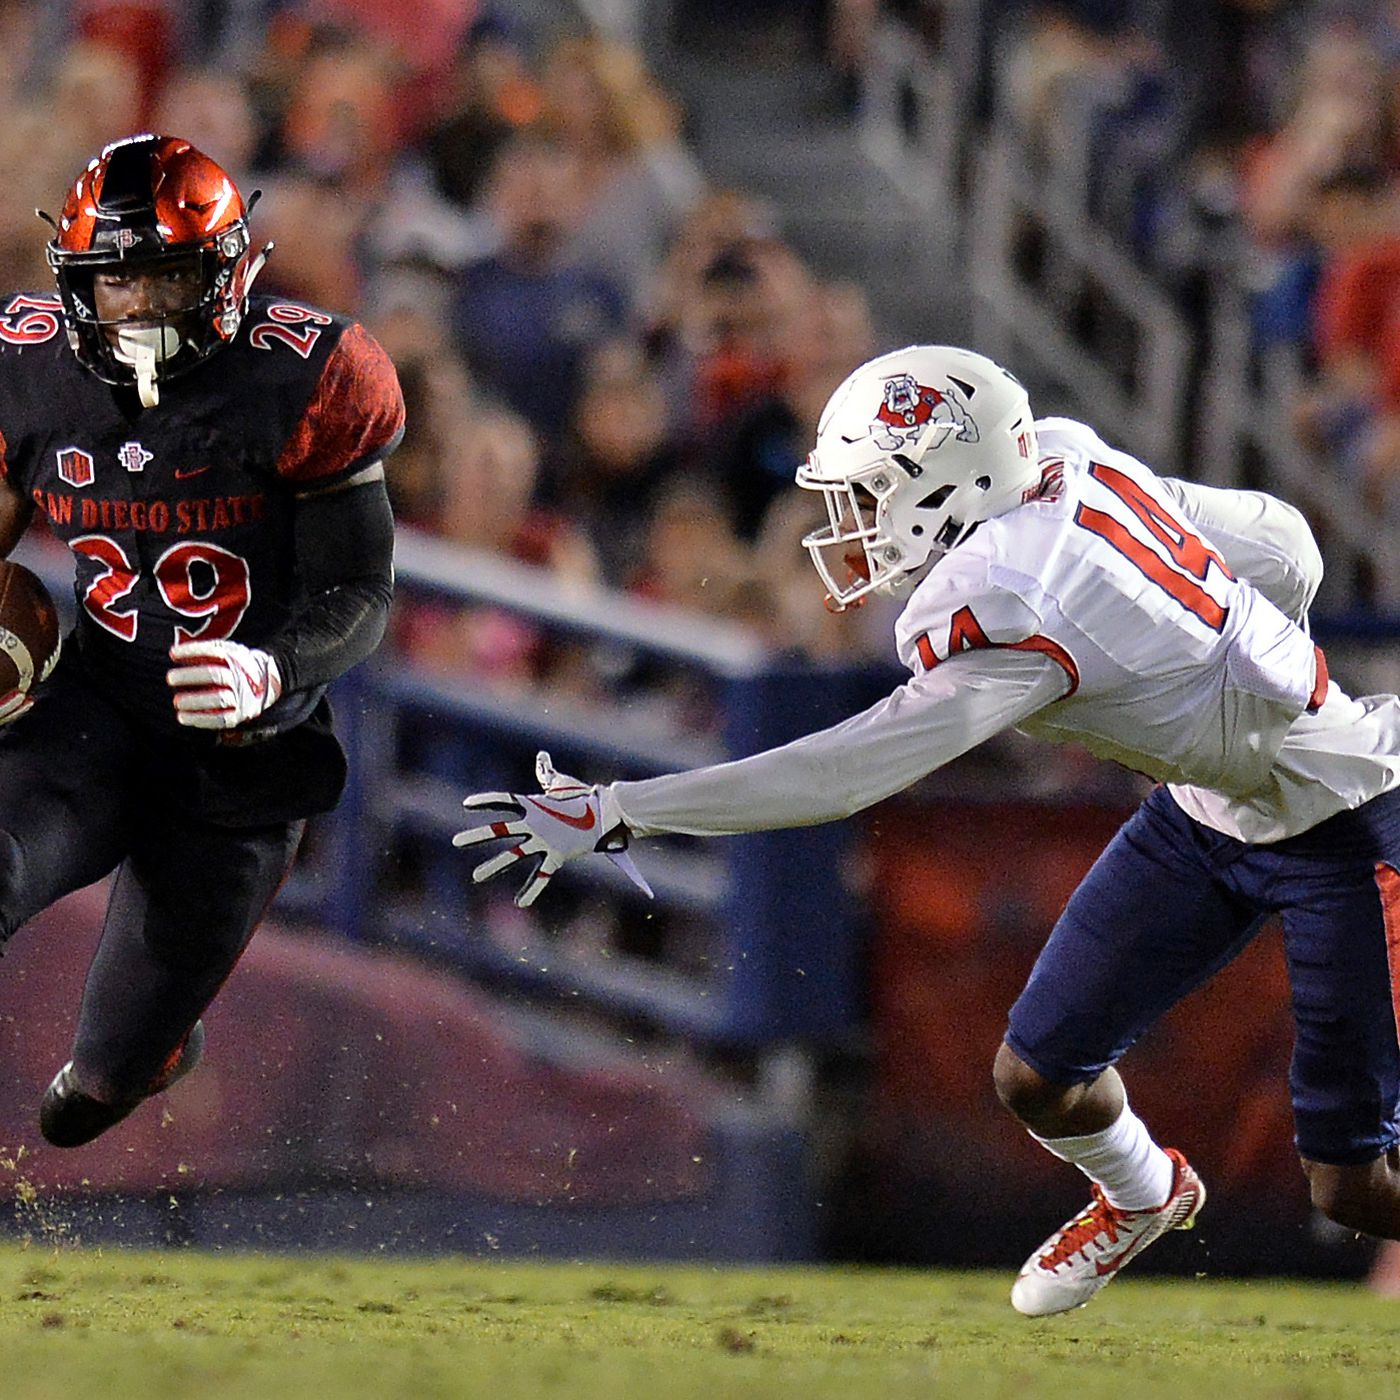 competitive price 64ec8 0d5b2 San Diego State football 2018 preview: Potential made real ...